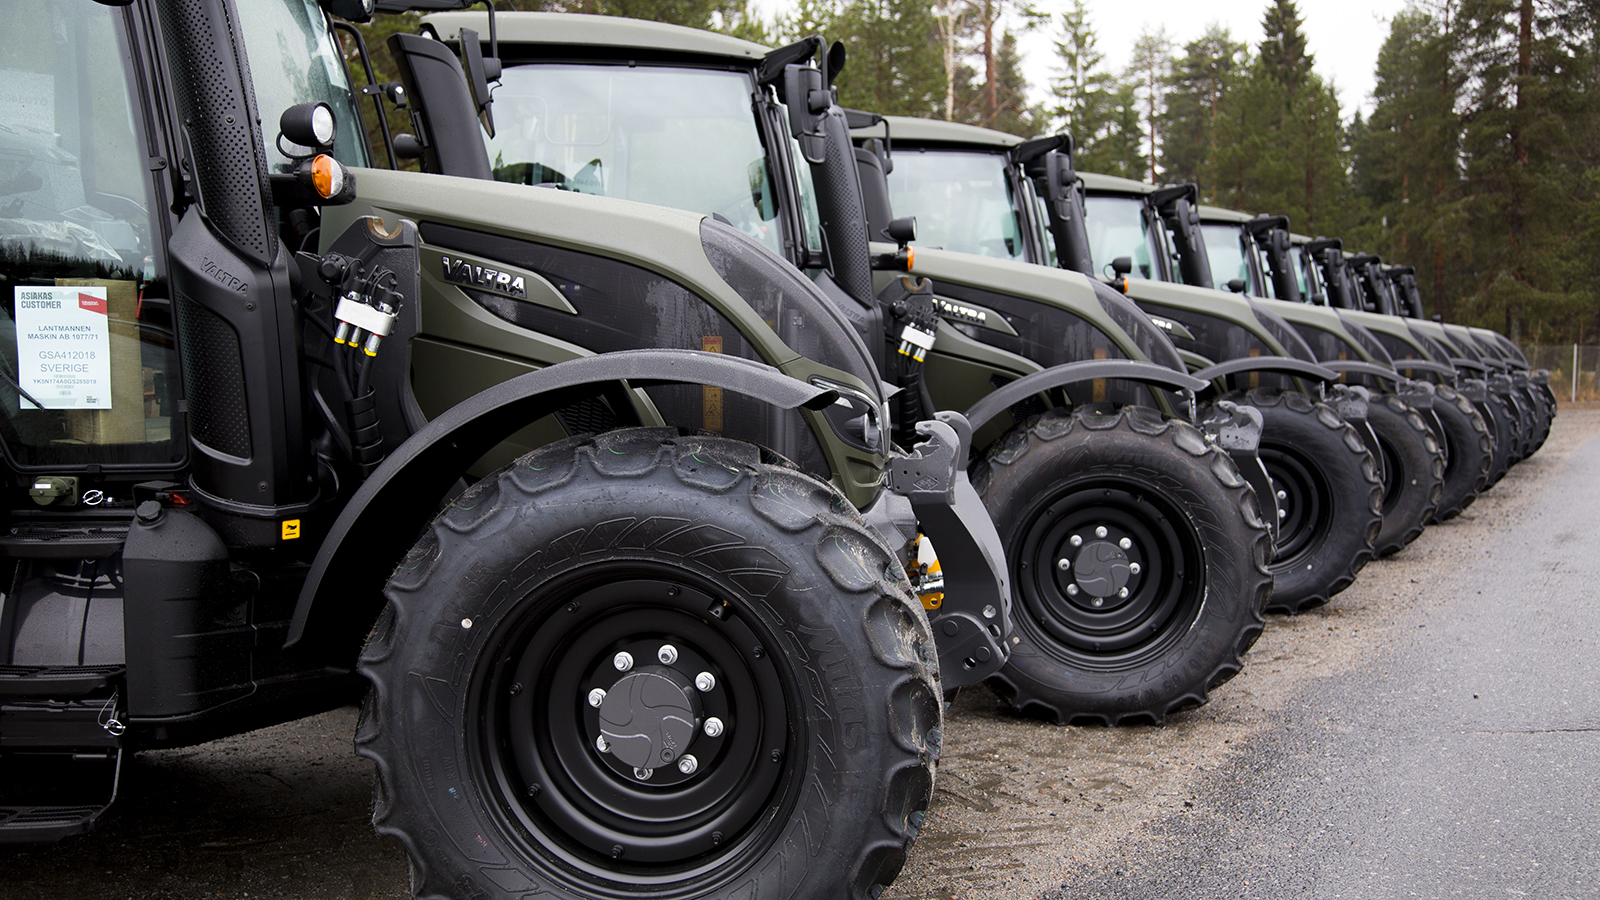 valtra unlimited military tractors custom made